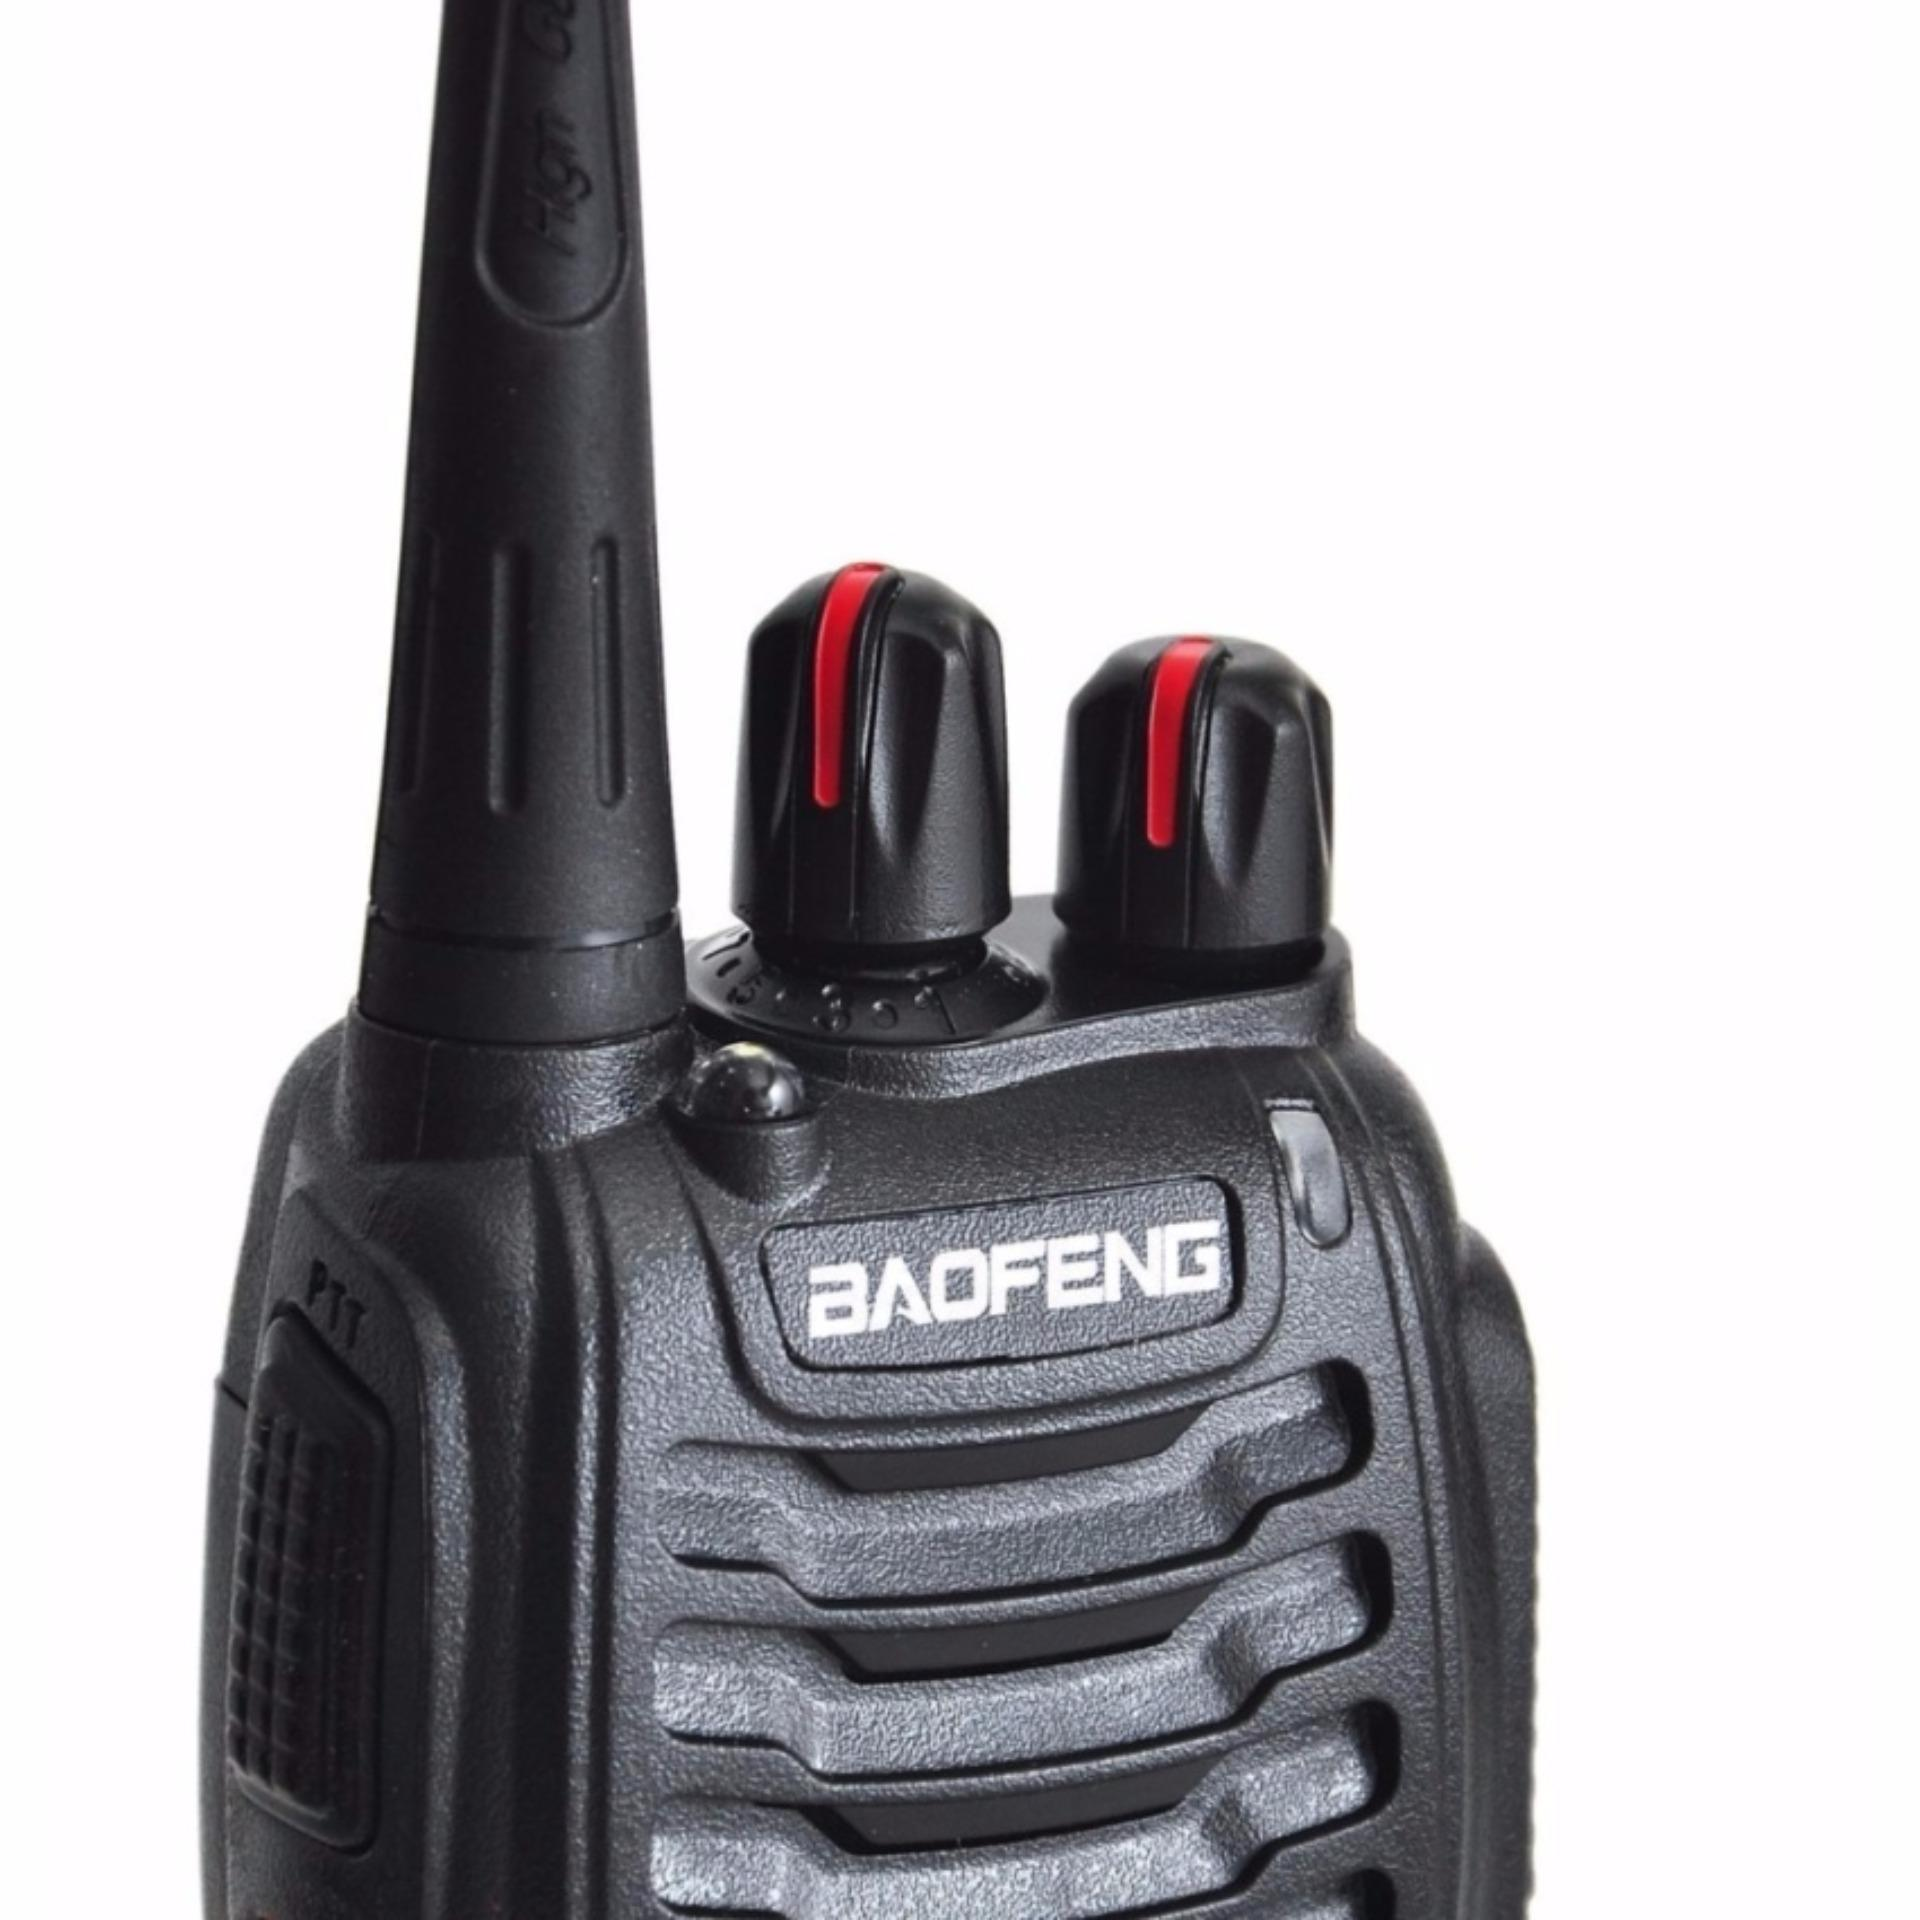 BF-888s Walkie Talkie (1pcs) - picture 2